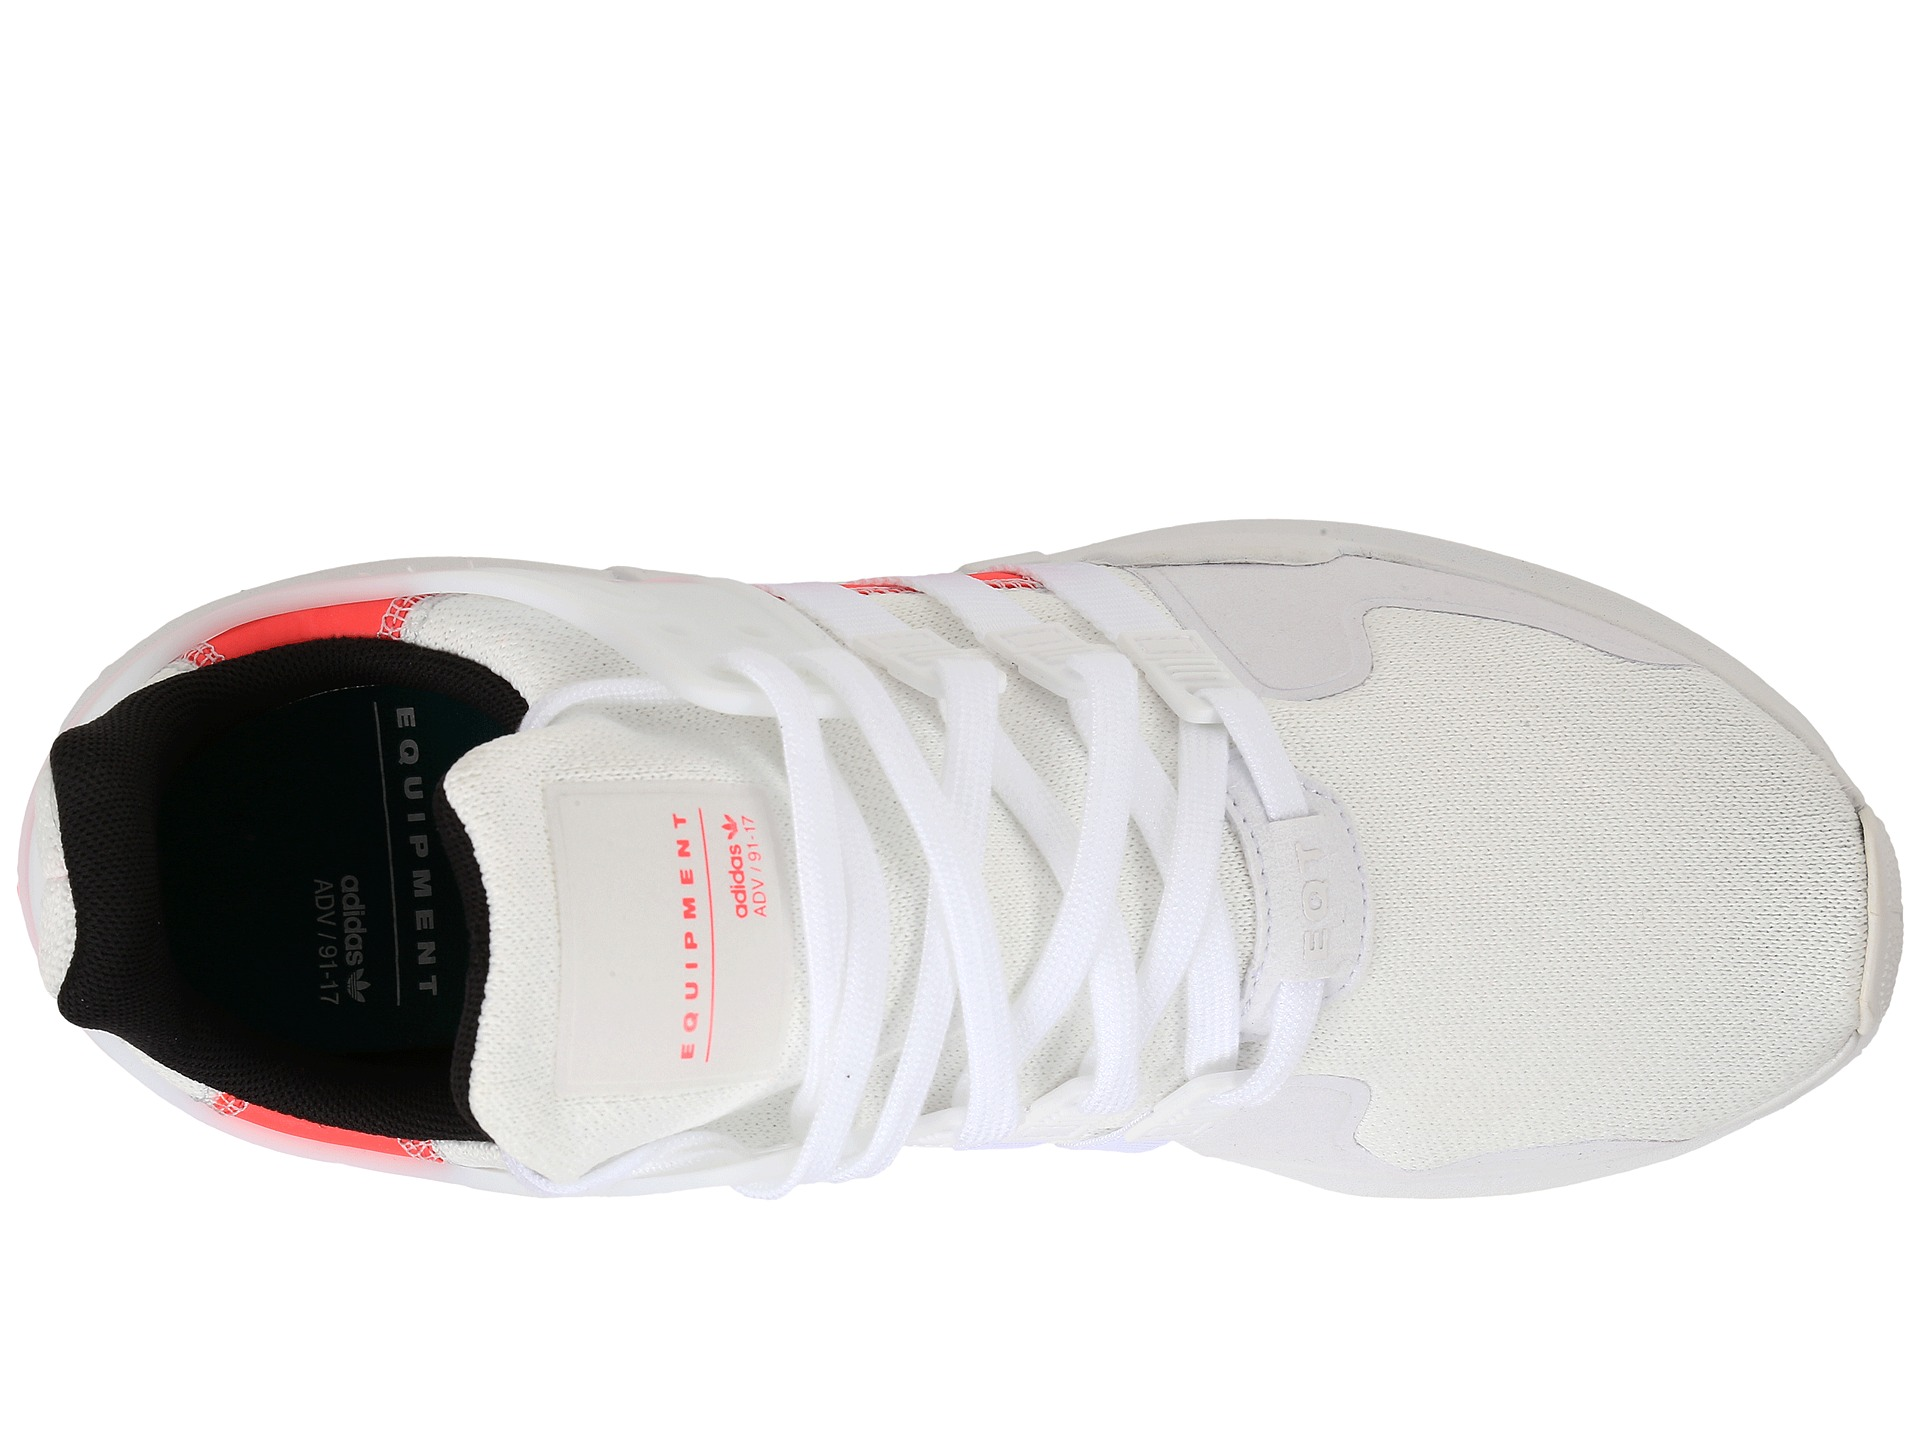 Cheap Adidas EQT Support 93/17 boost white pink red glitch camo